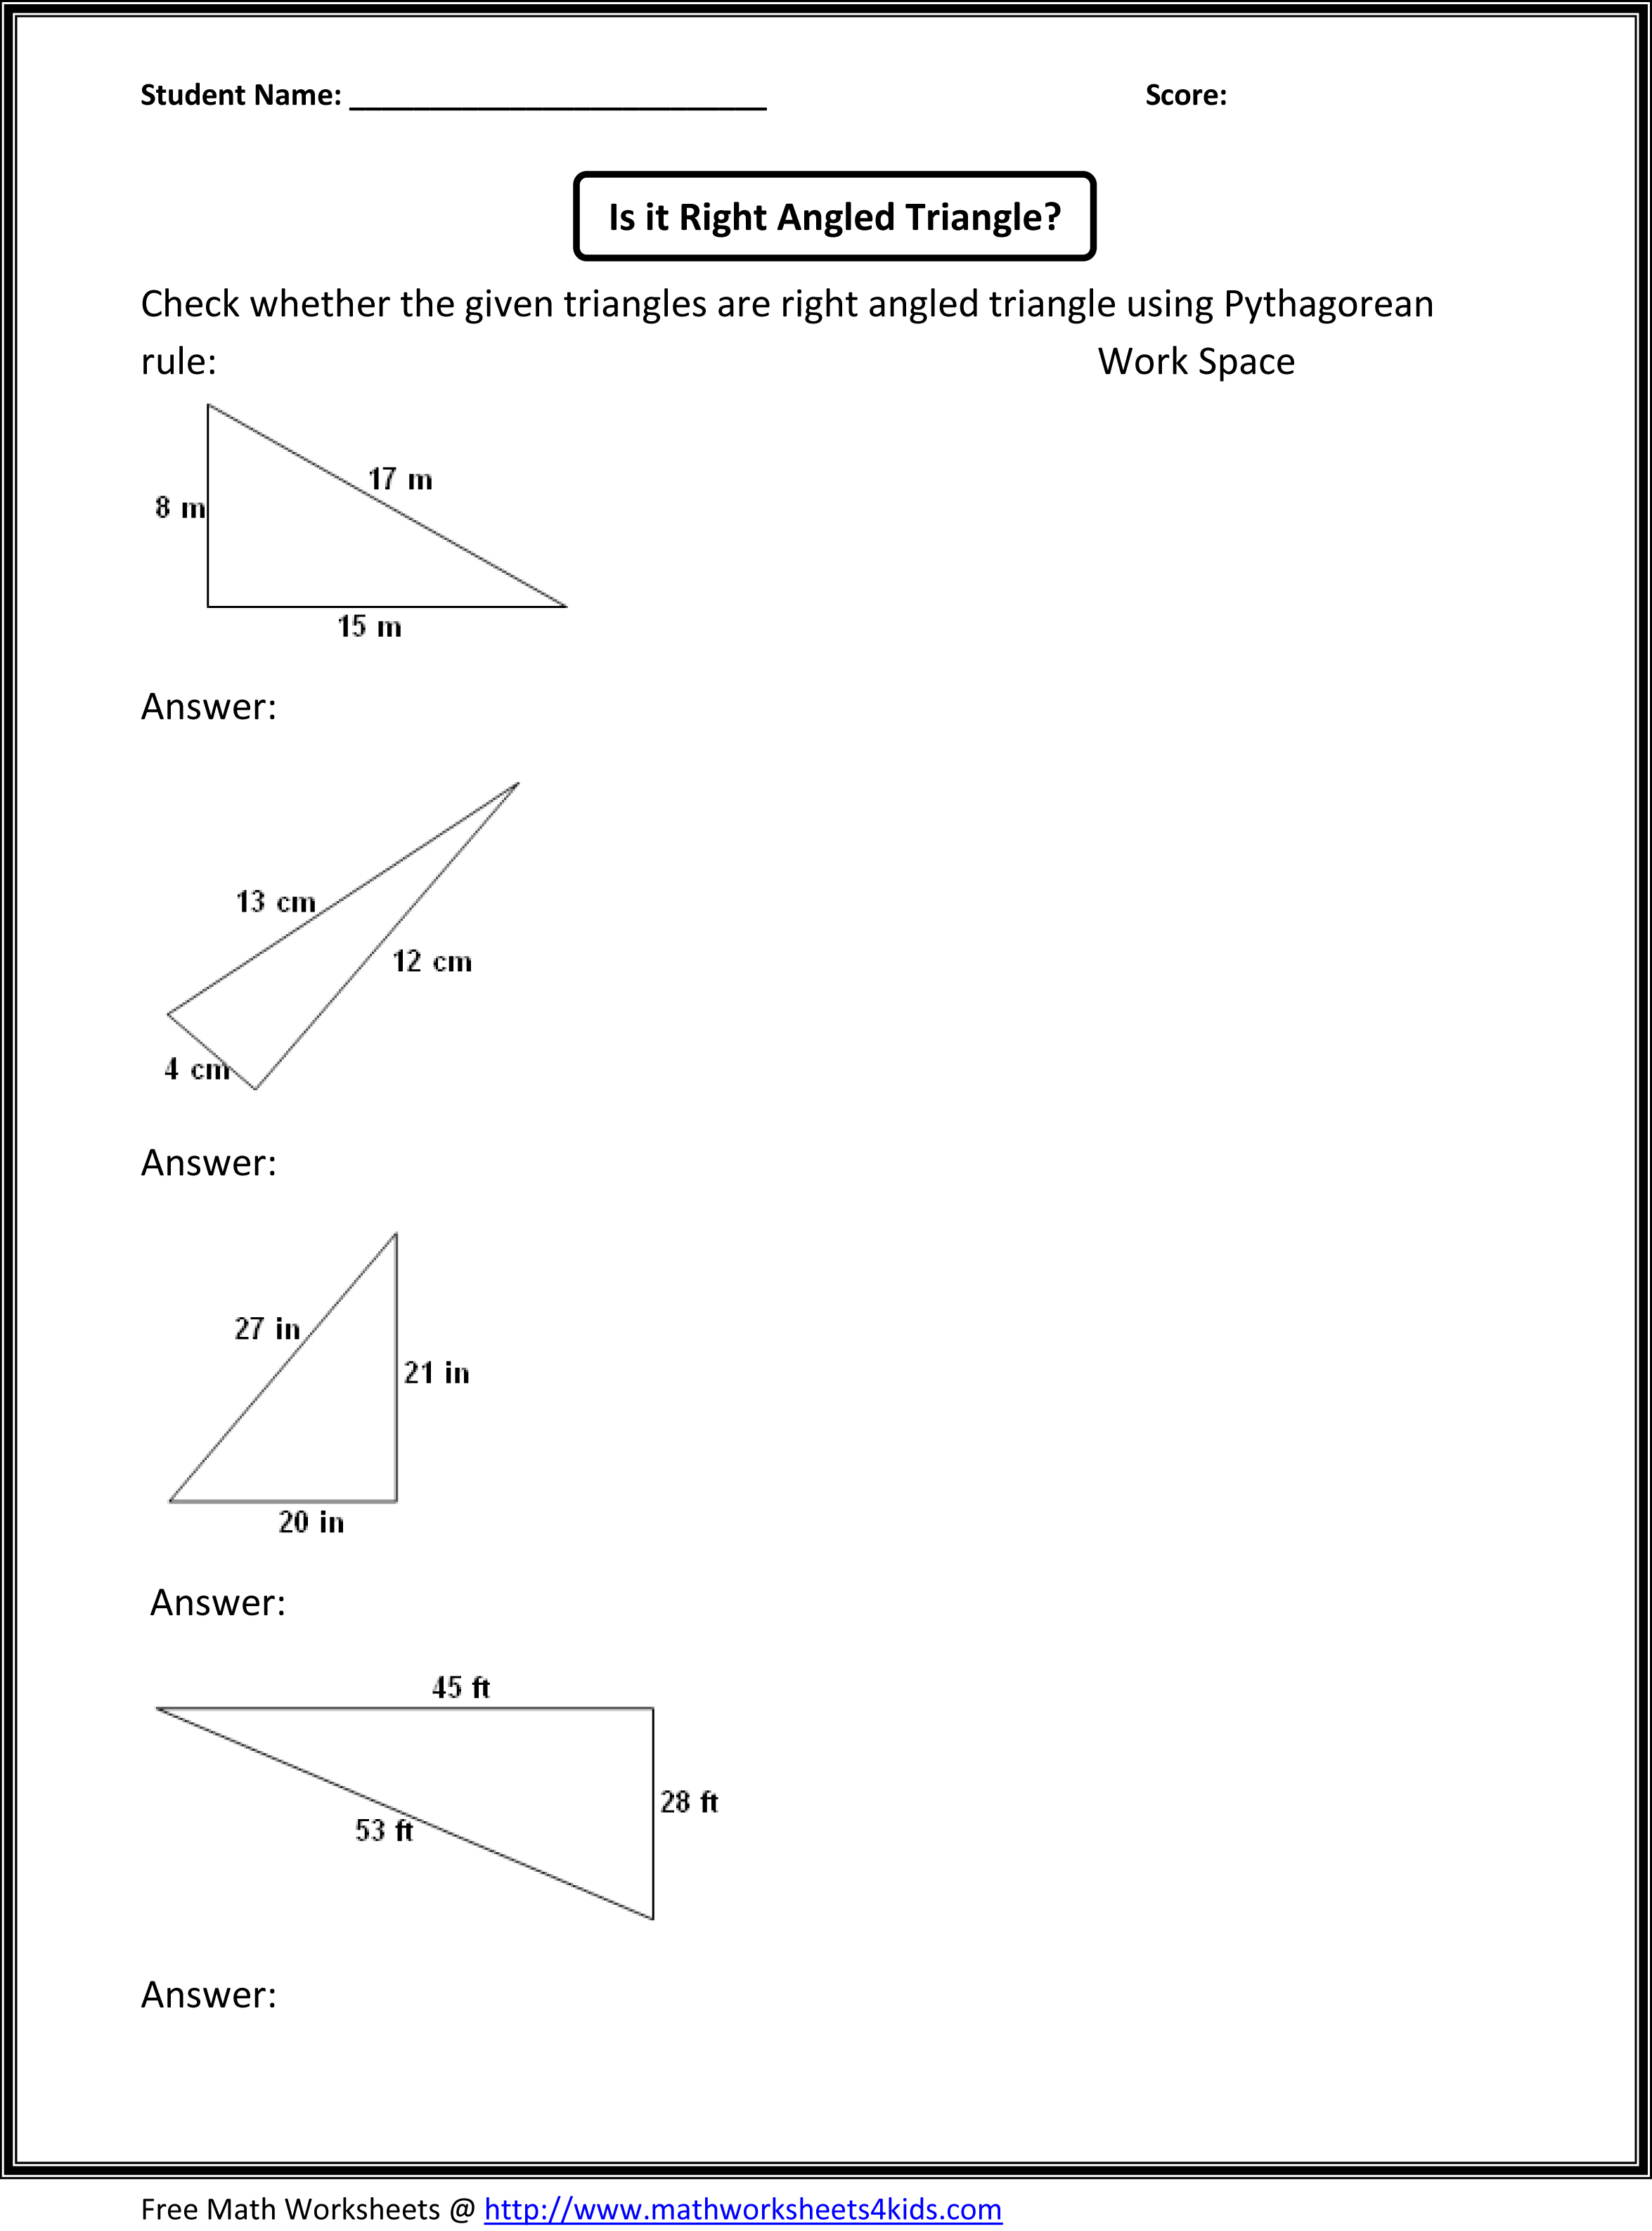 Free Worksheet Free 8th Grade Math Worksheets paydayloansusaprh – 8th Math Worksheets